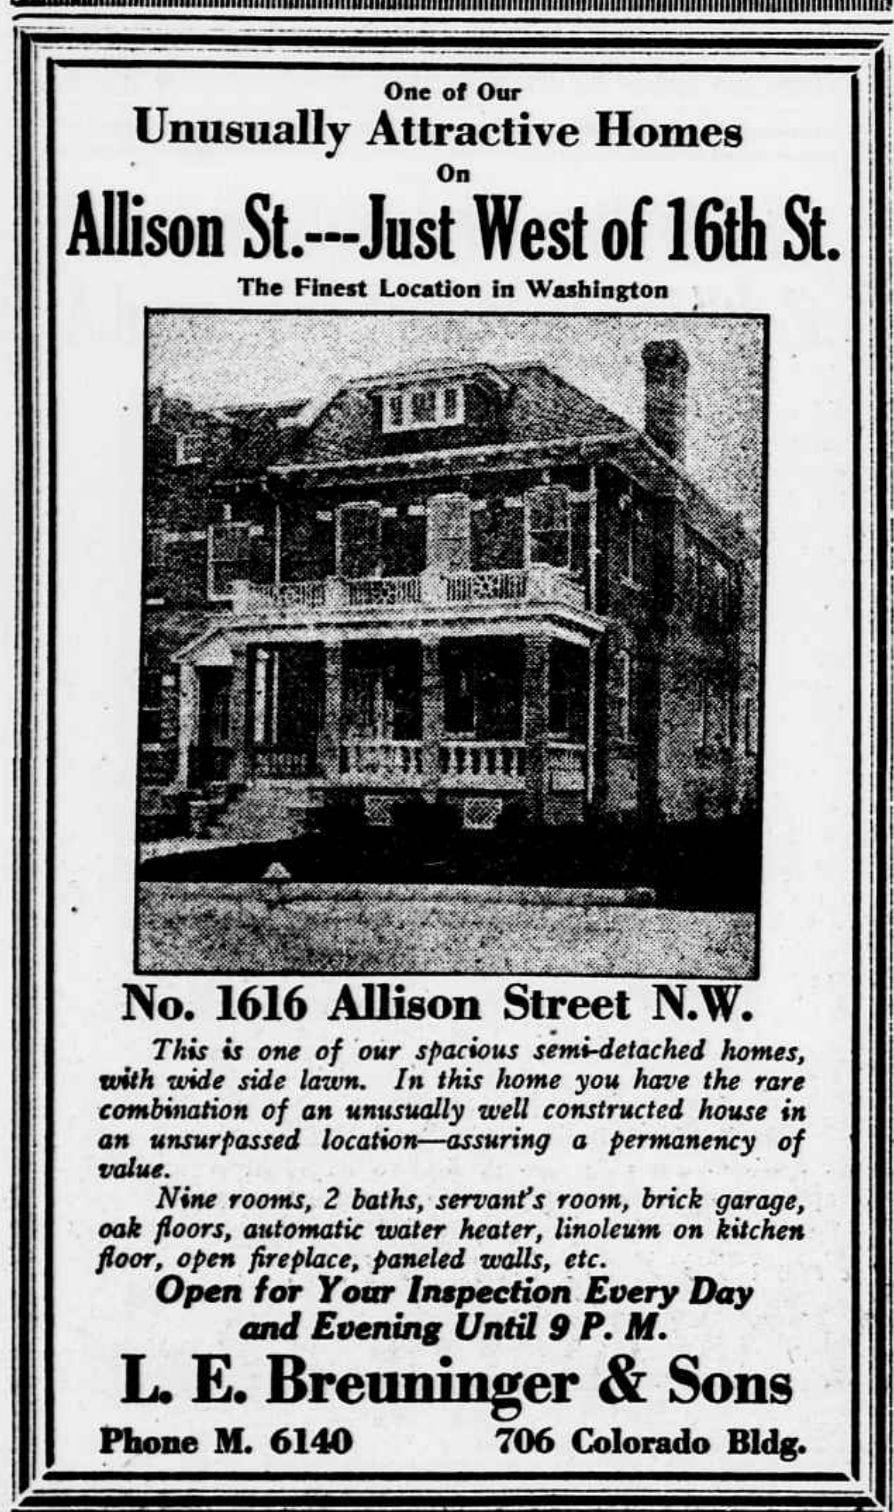 New Crestwood Home on Allison Street For Sale in 1922